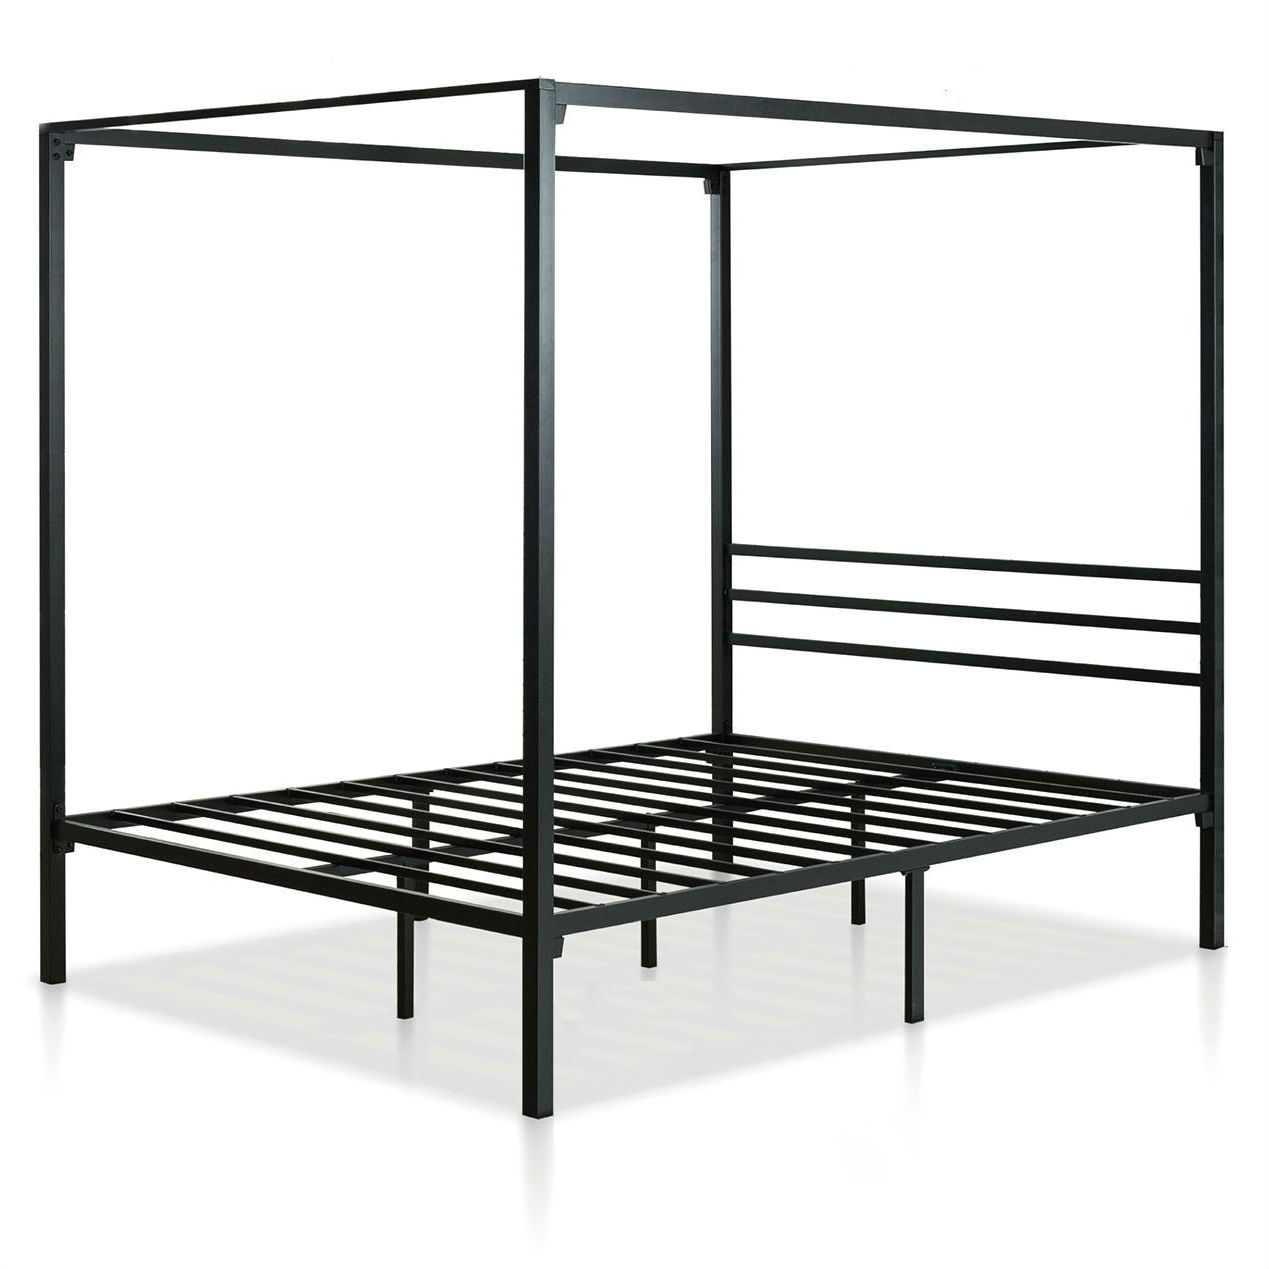 - Queen Size Modern Black Metal Canopy Bed Frame FastFurnishings.com